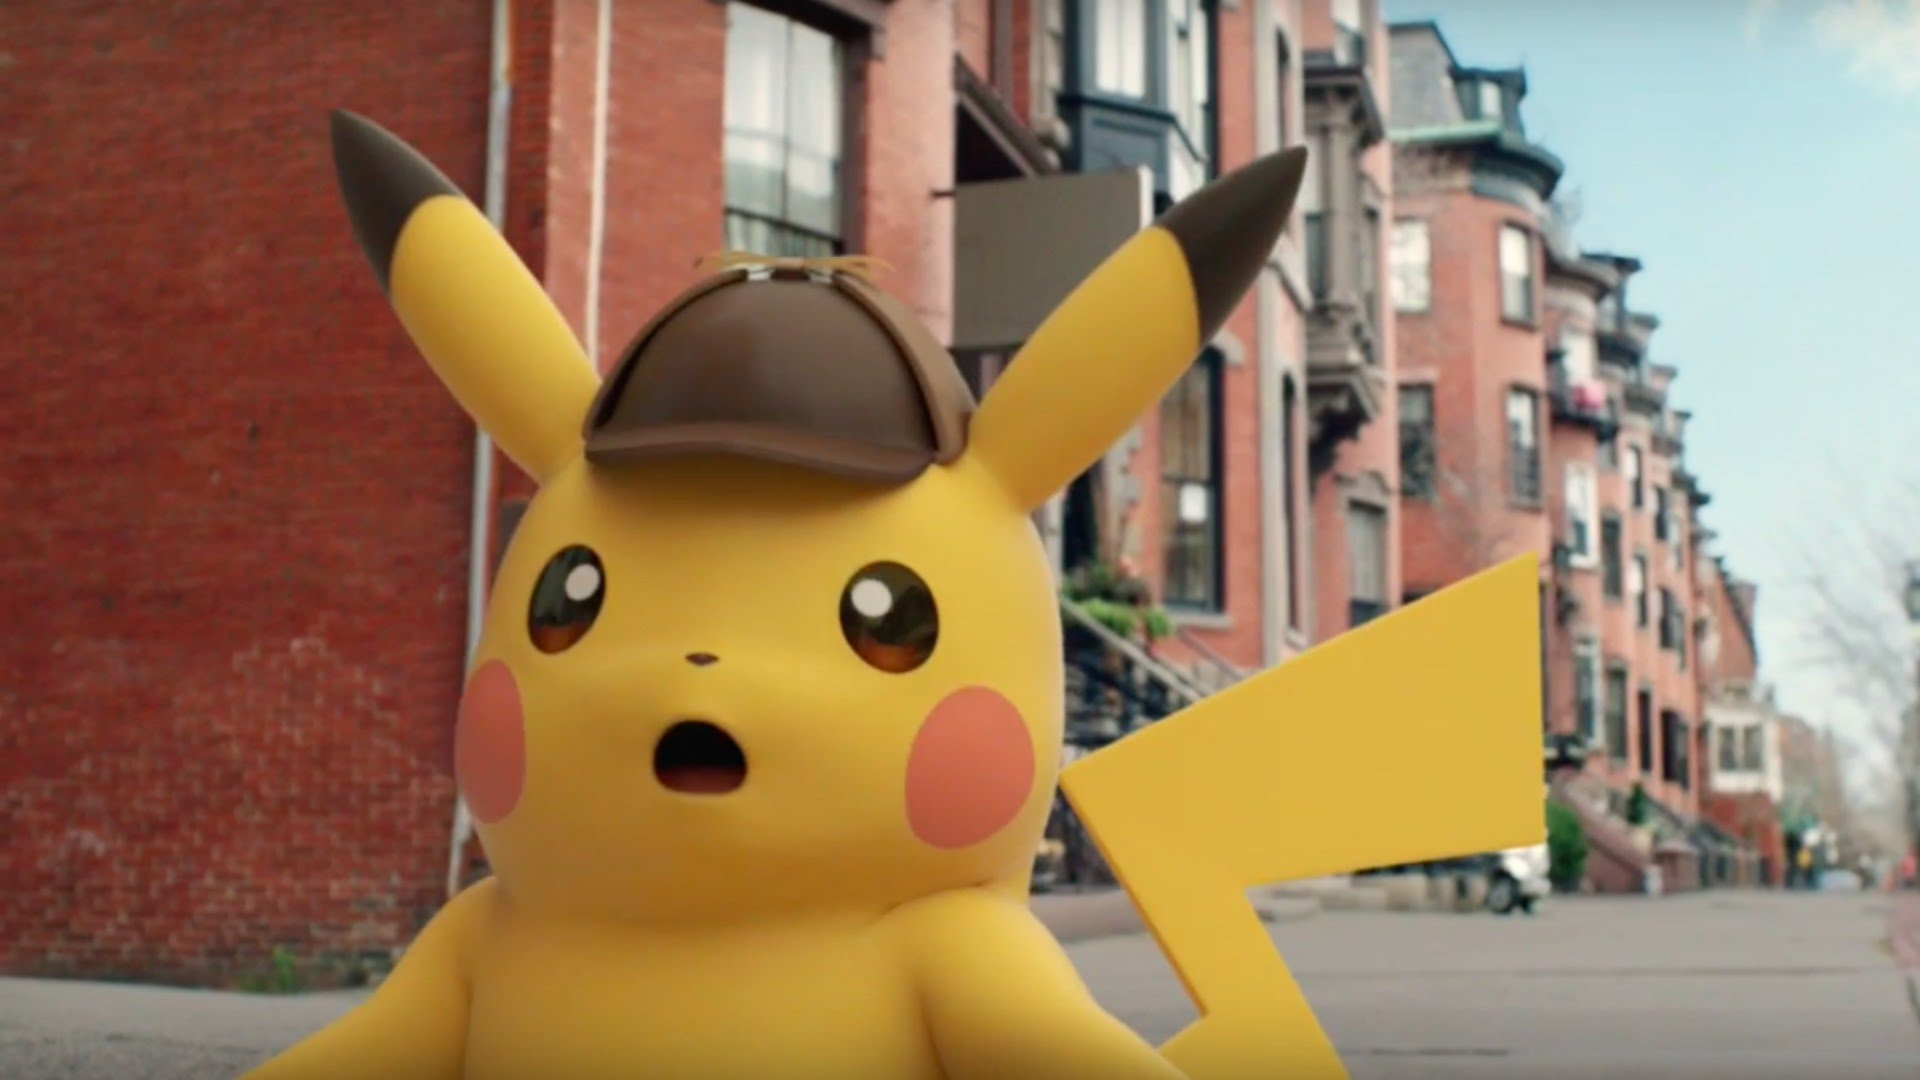 Detective Pikachu has the single greatest game mechanic ever designed